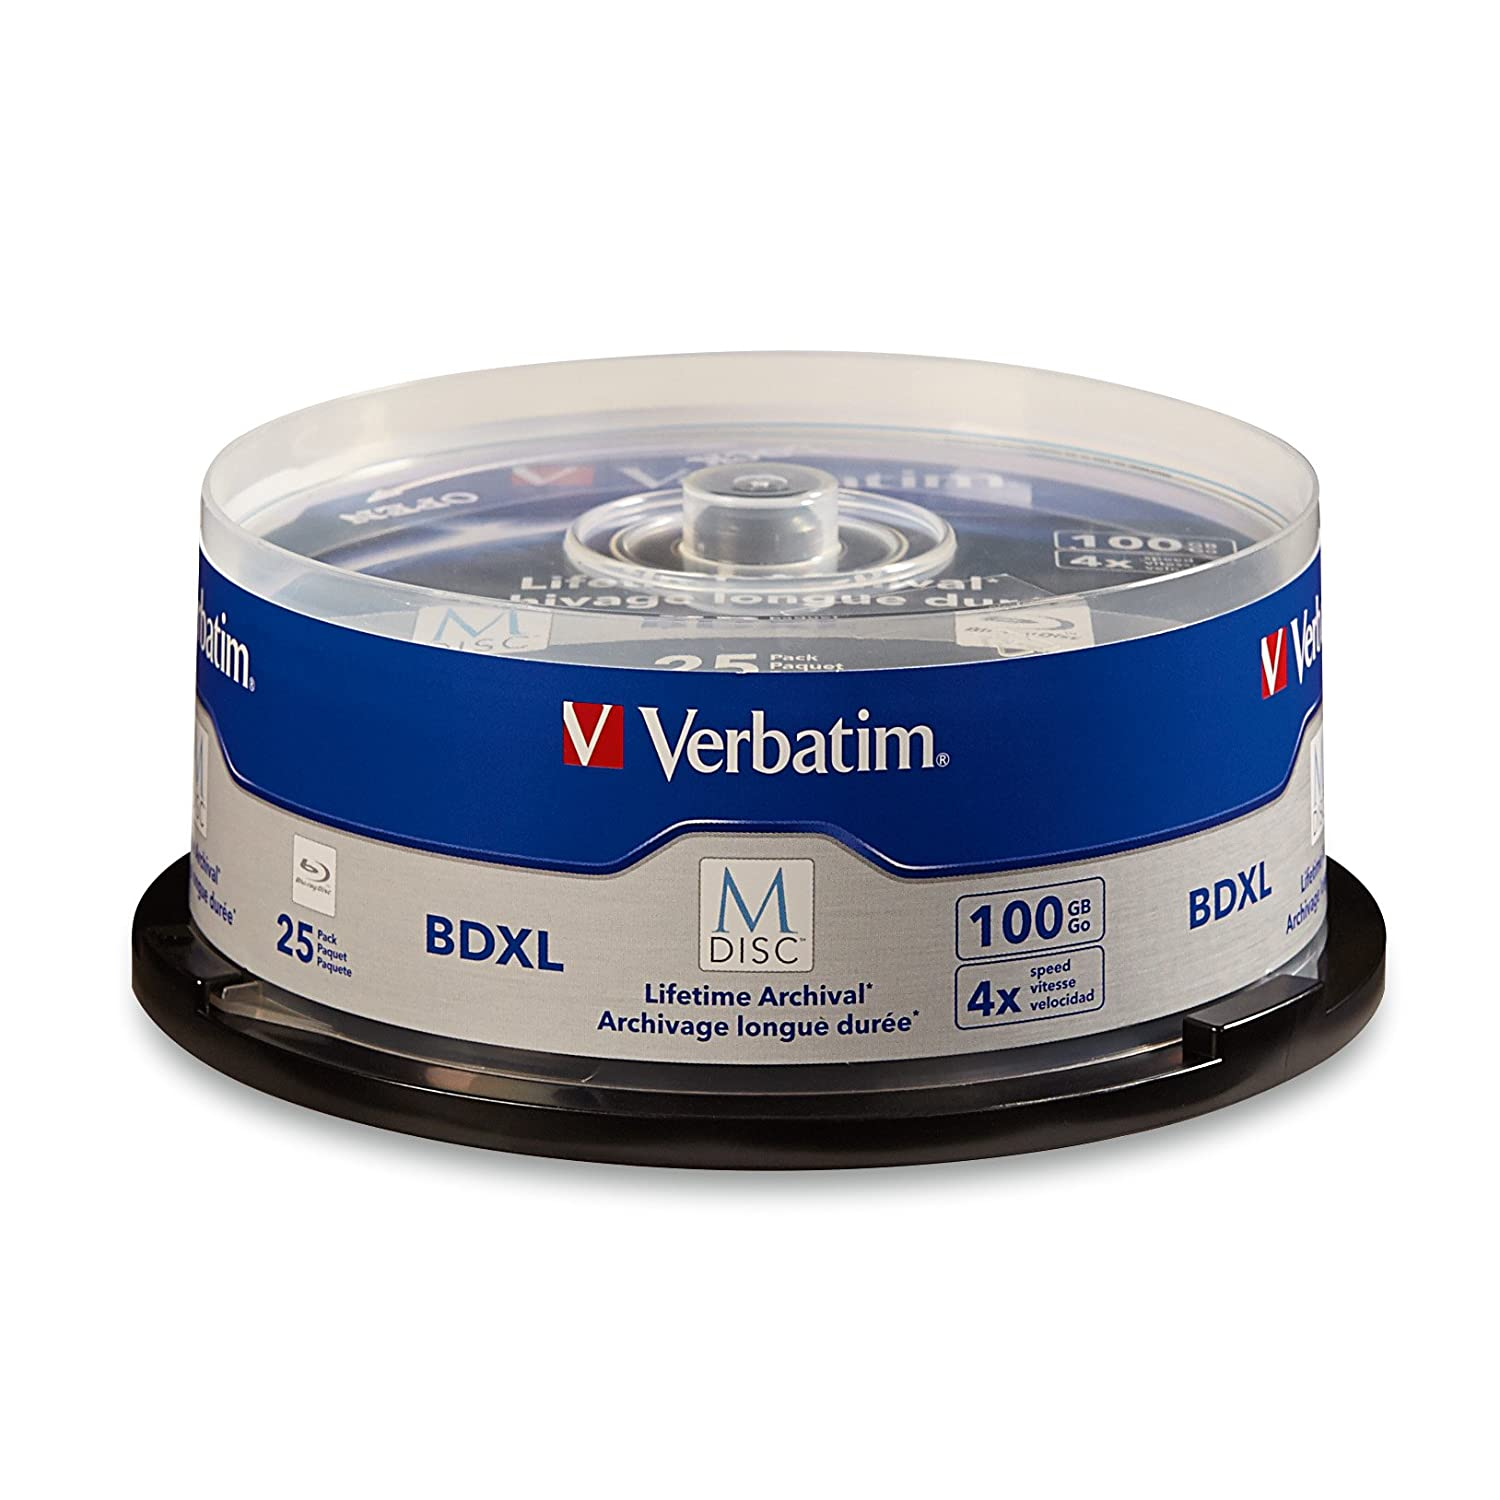 Verbatim 98925 M-Disc BD-R DL 50GB 6X White Inkjet Printable, Hub Printable – 25pk Spindle VERBATIM CORPORATION